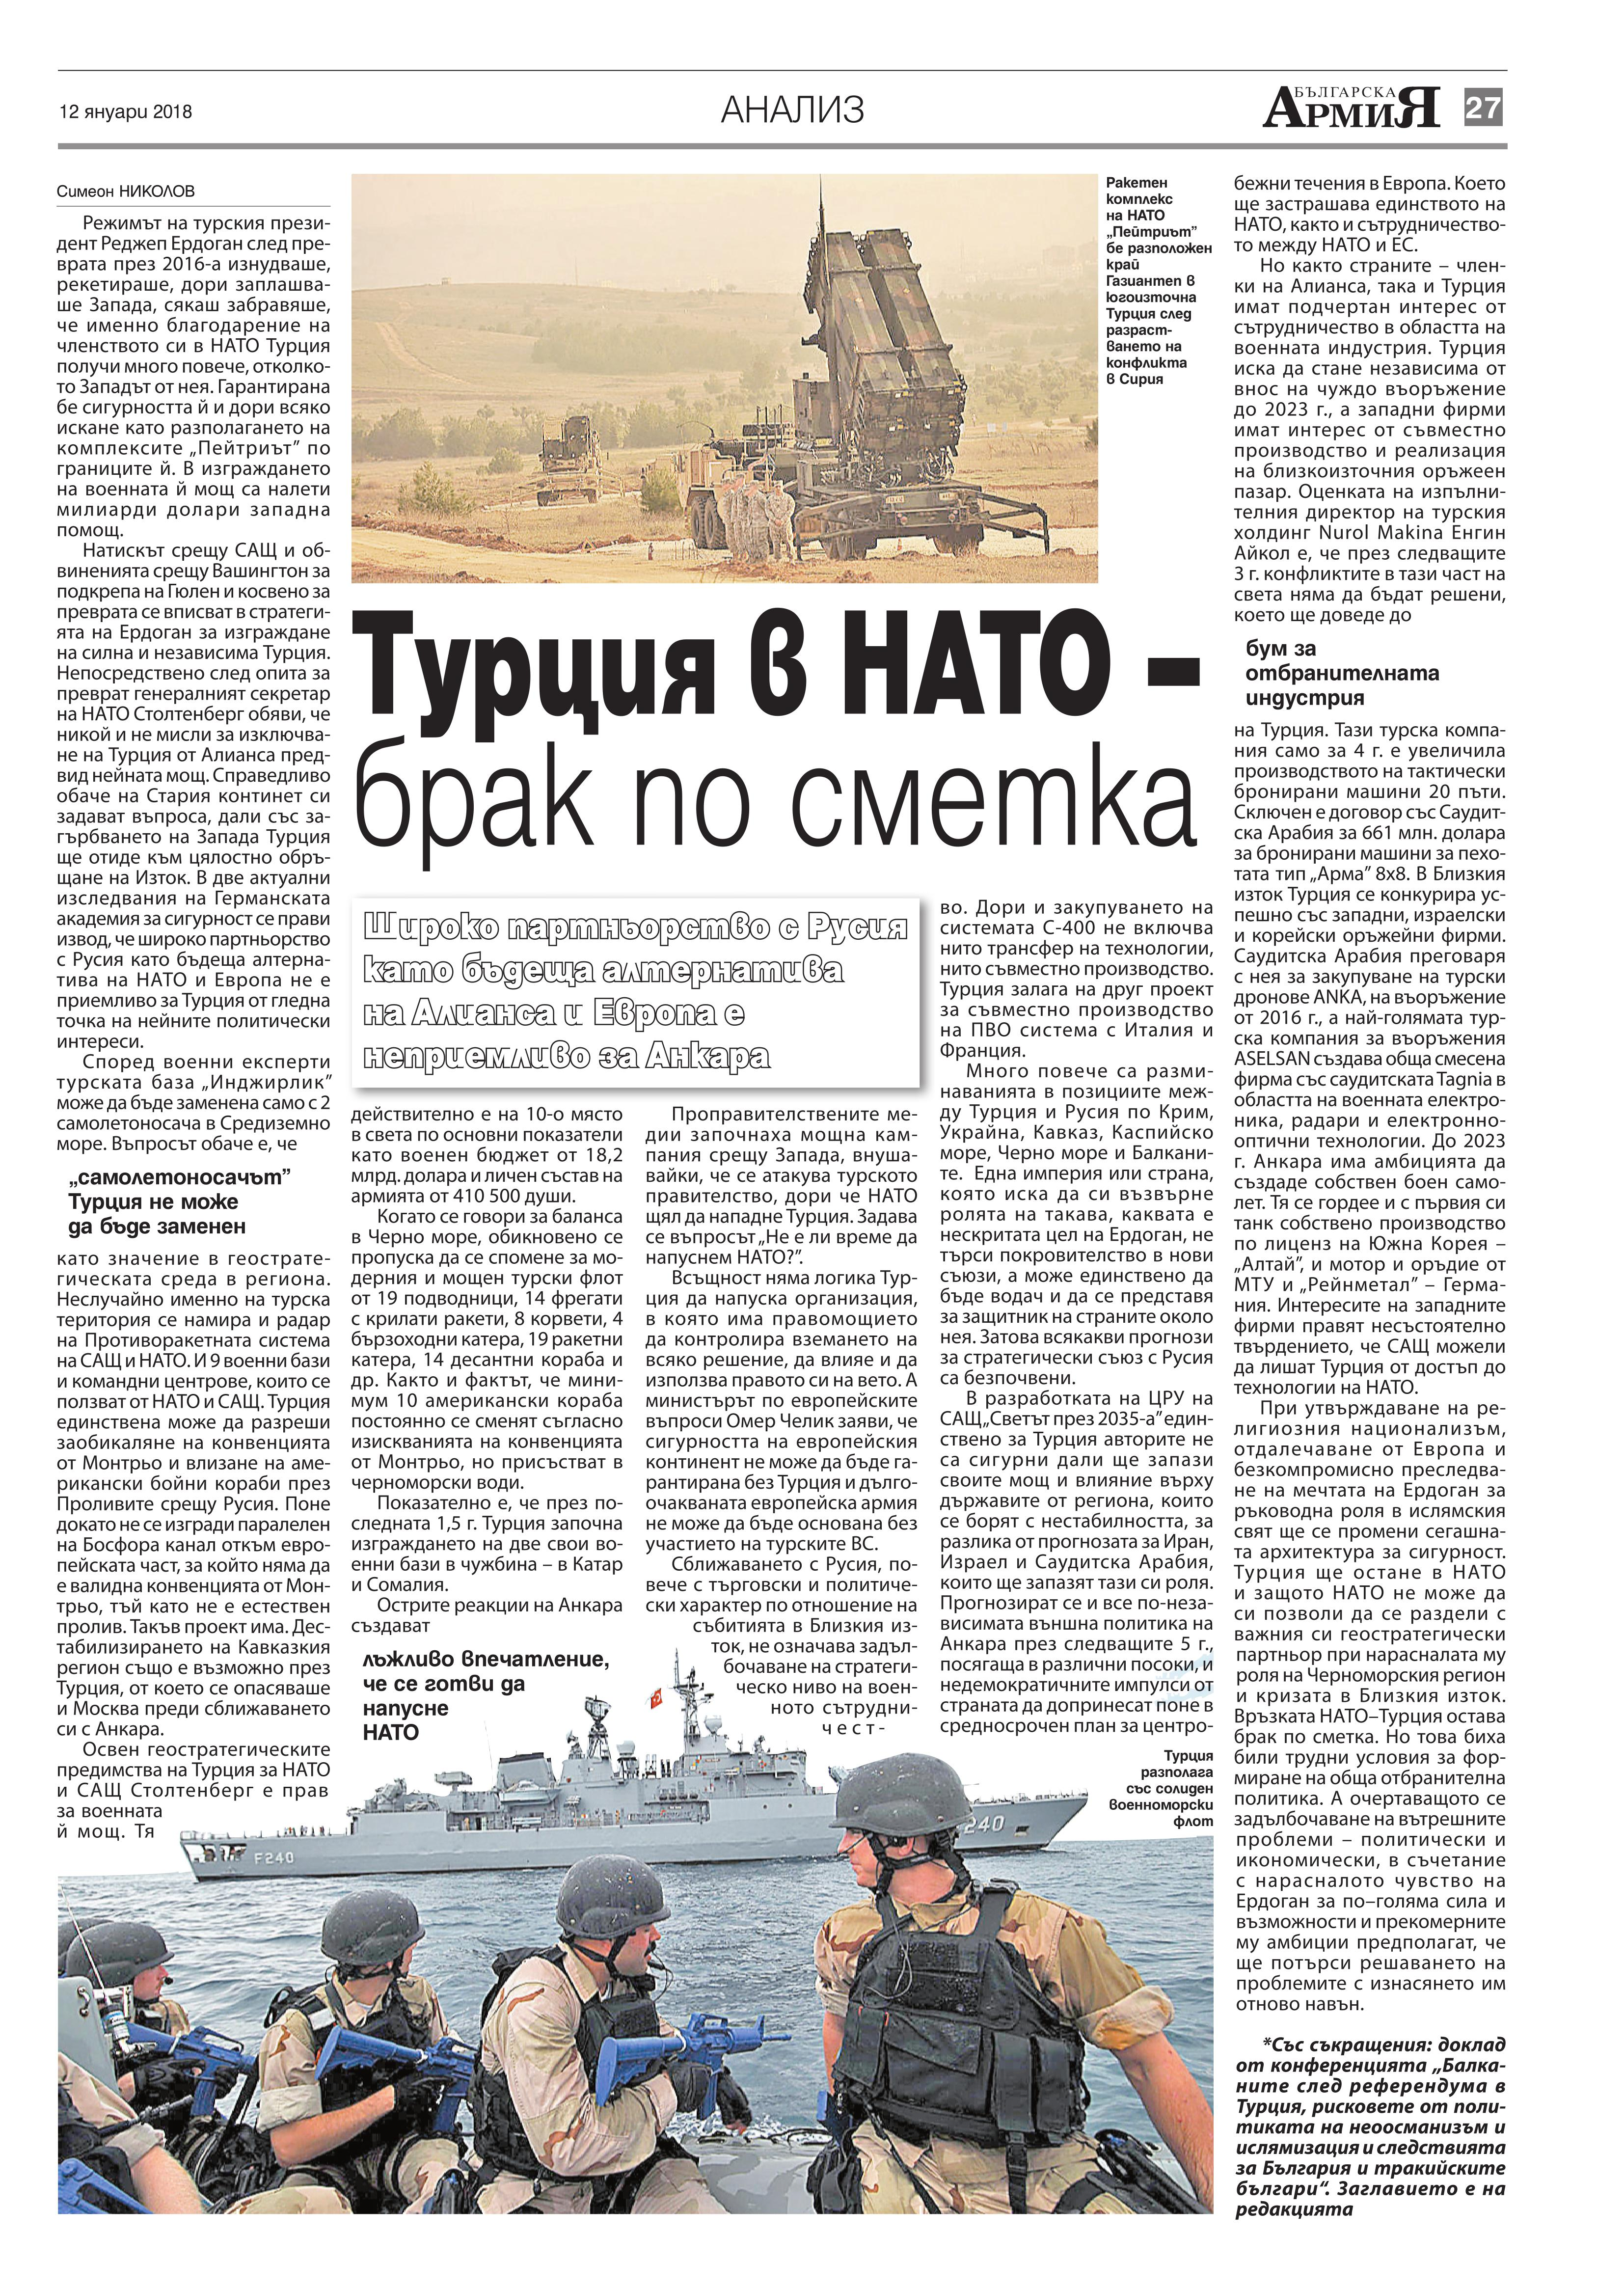 https://armymedia.bg/wp-content/uploads/2015/06/27.page1_-31.jpg